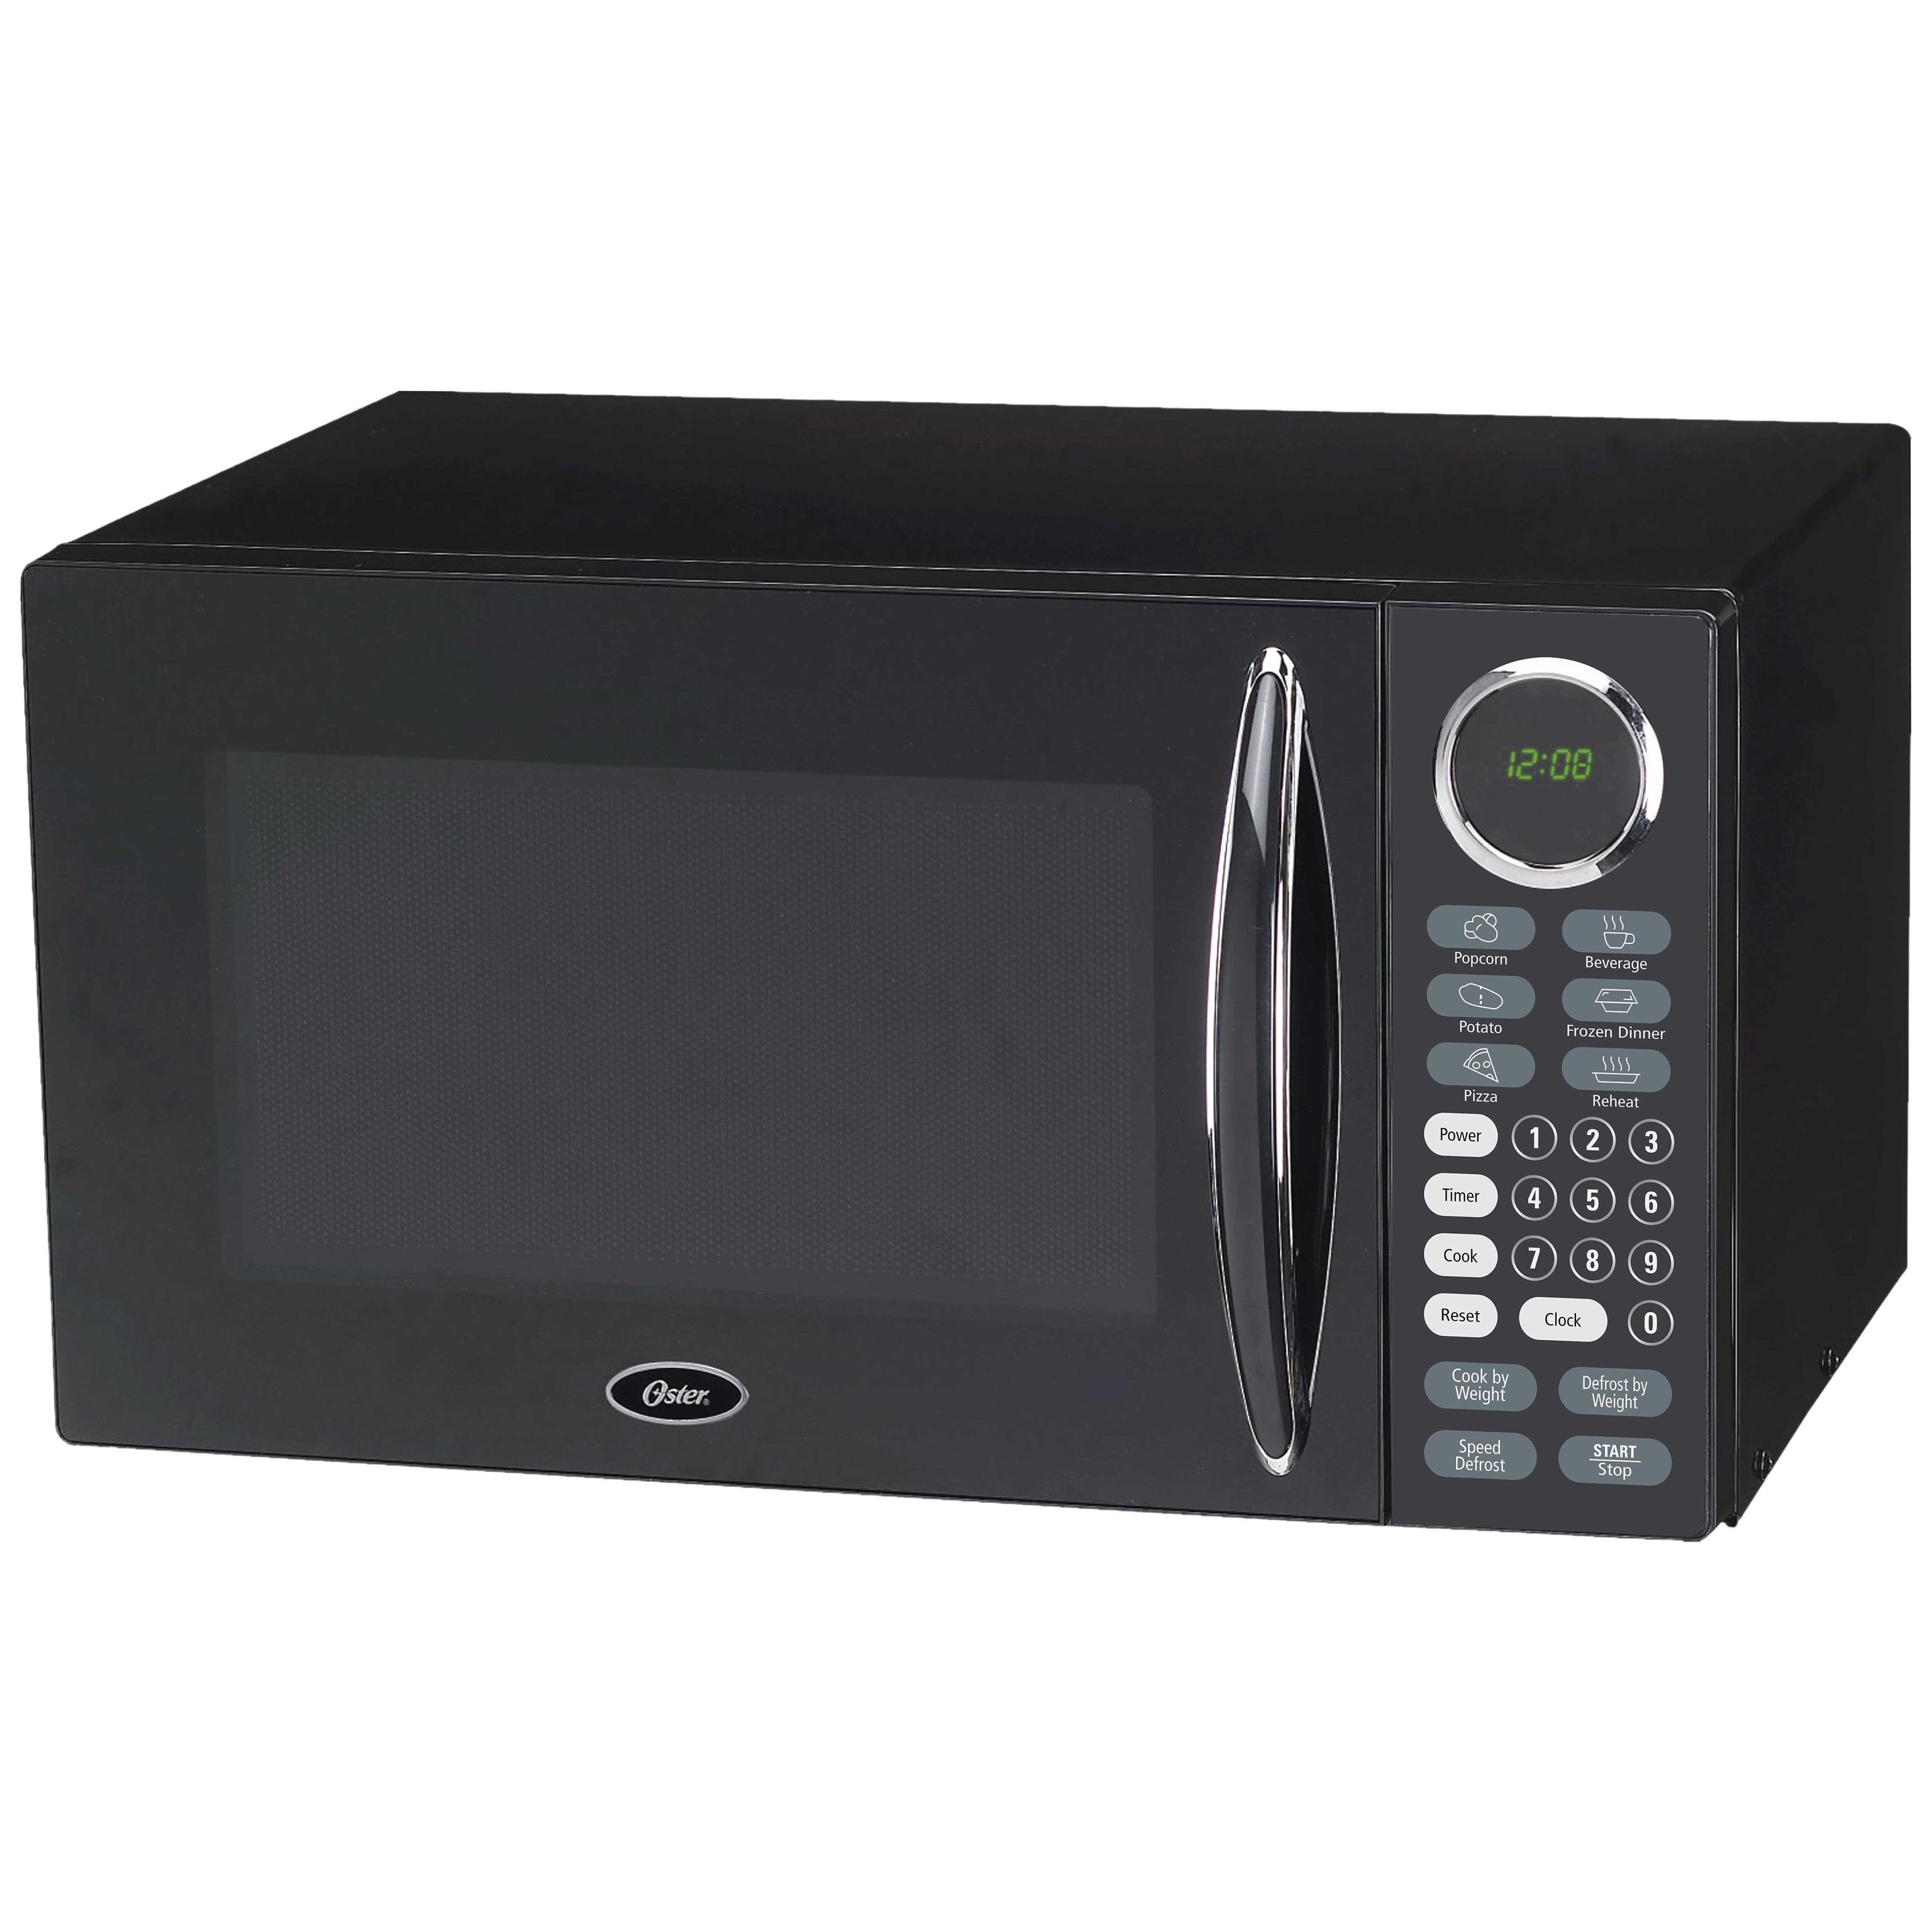 Oster Black 0 9 Cubic Foot Digital Microwave Oven Free Shipping Today 9672126